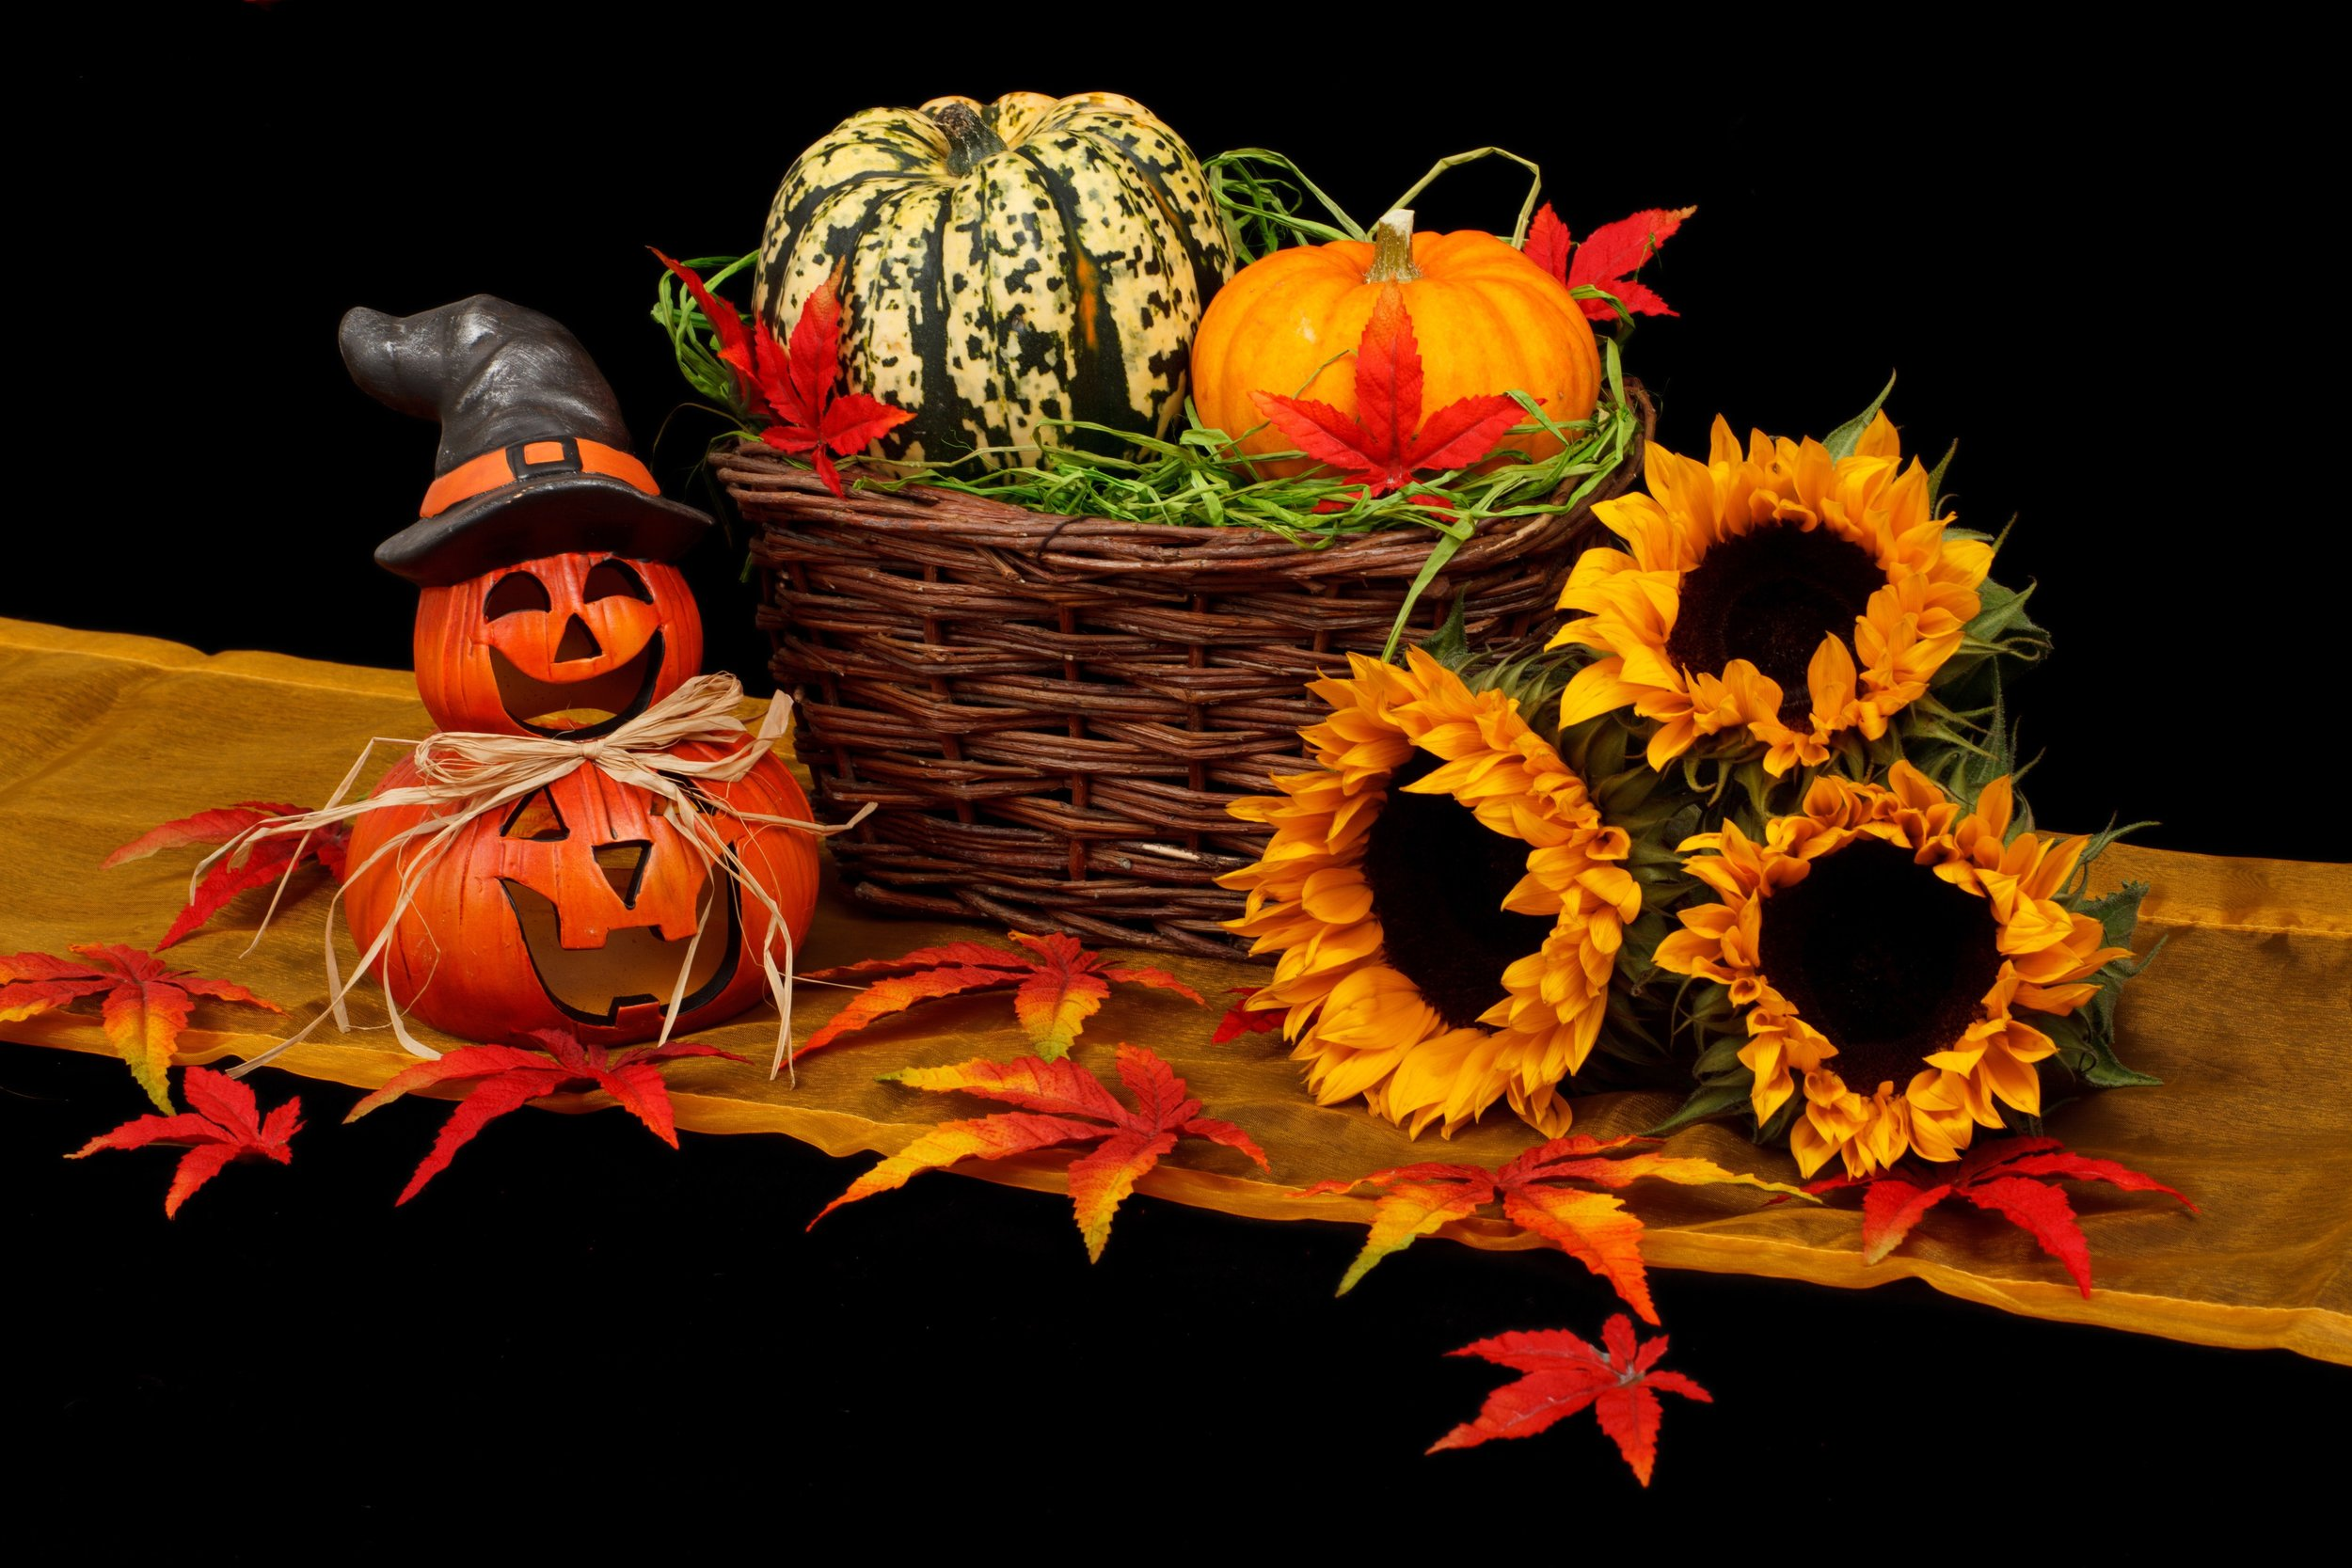 autumn-decoration-fall-41200.jpg